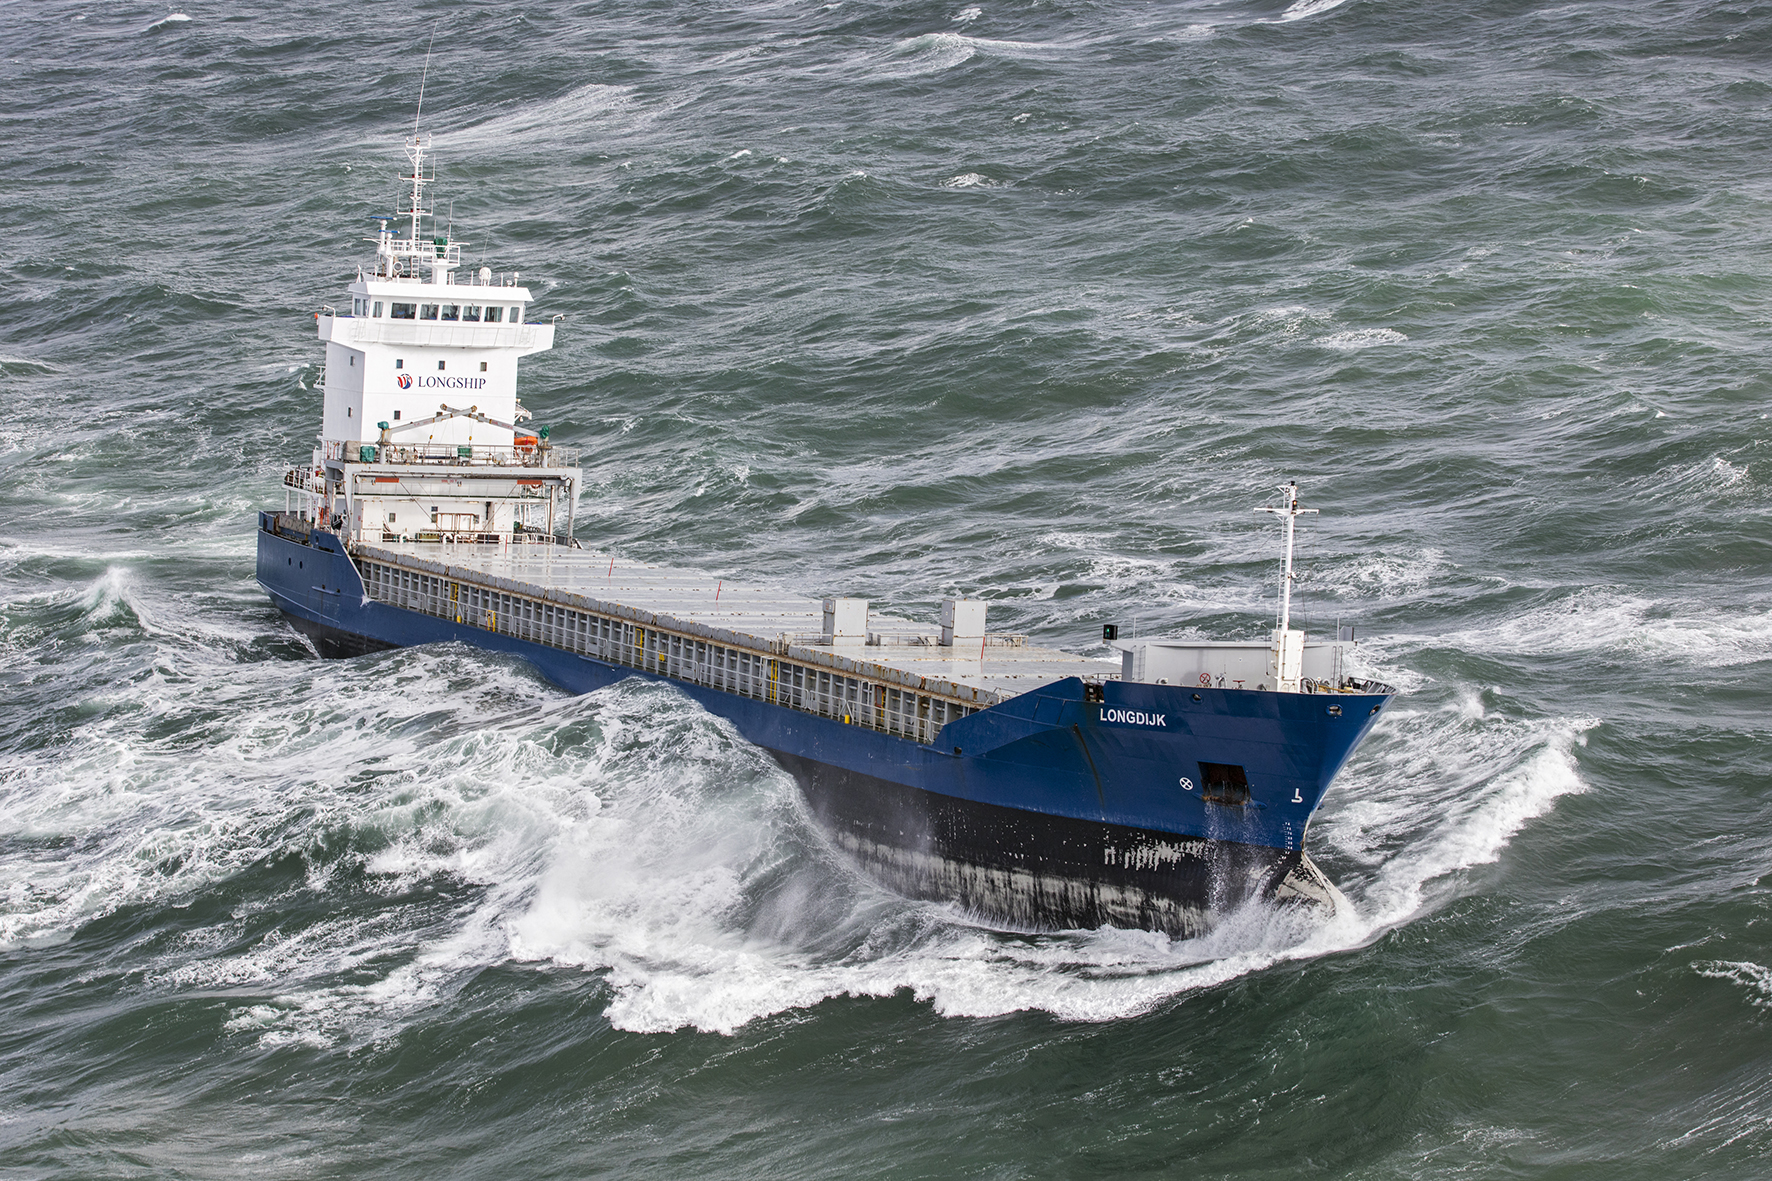 Groningen contracts Castor Marine to outfit 30 vessels